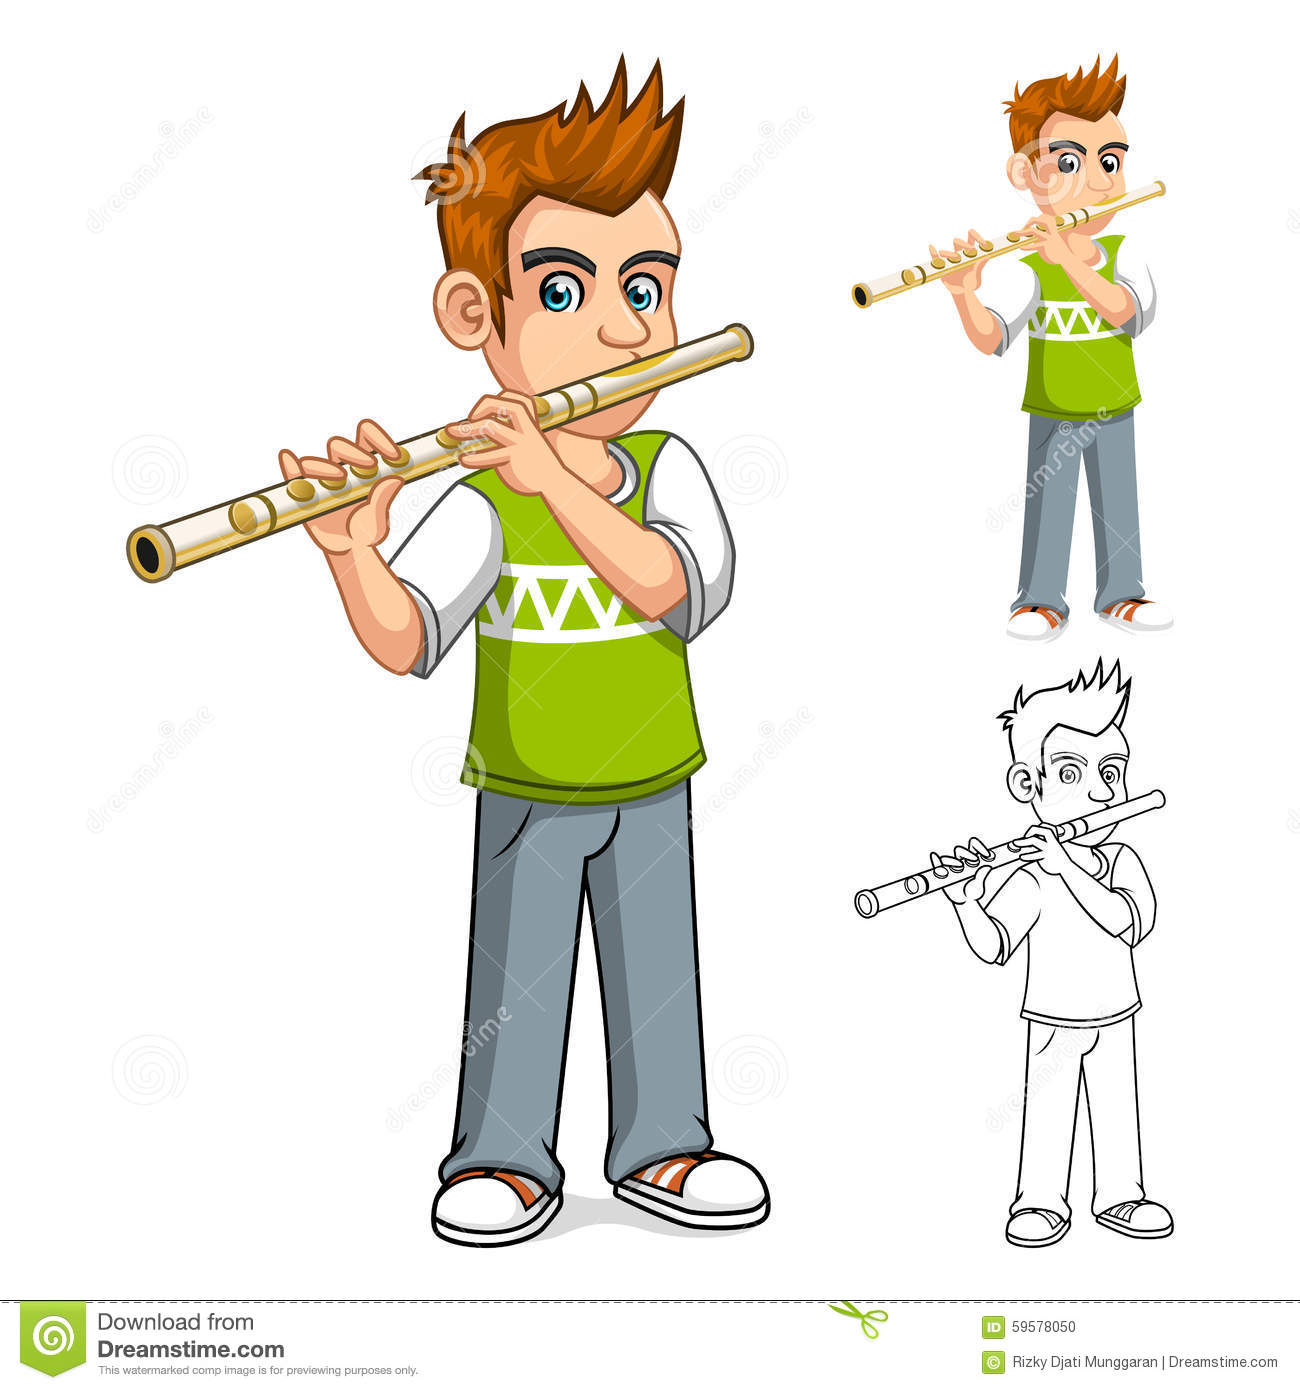 Watch more like Cartoon Flute Player.